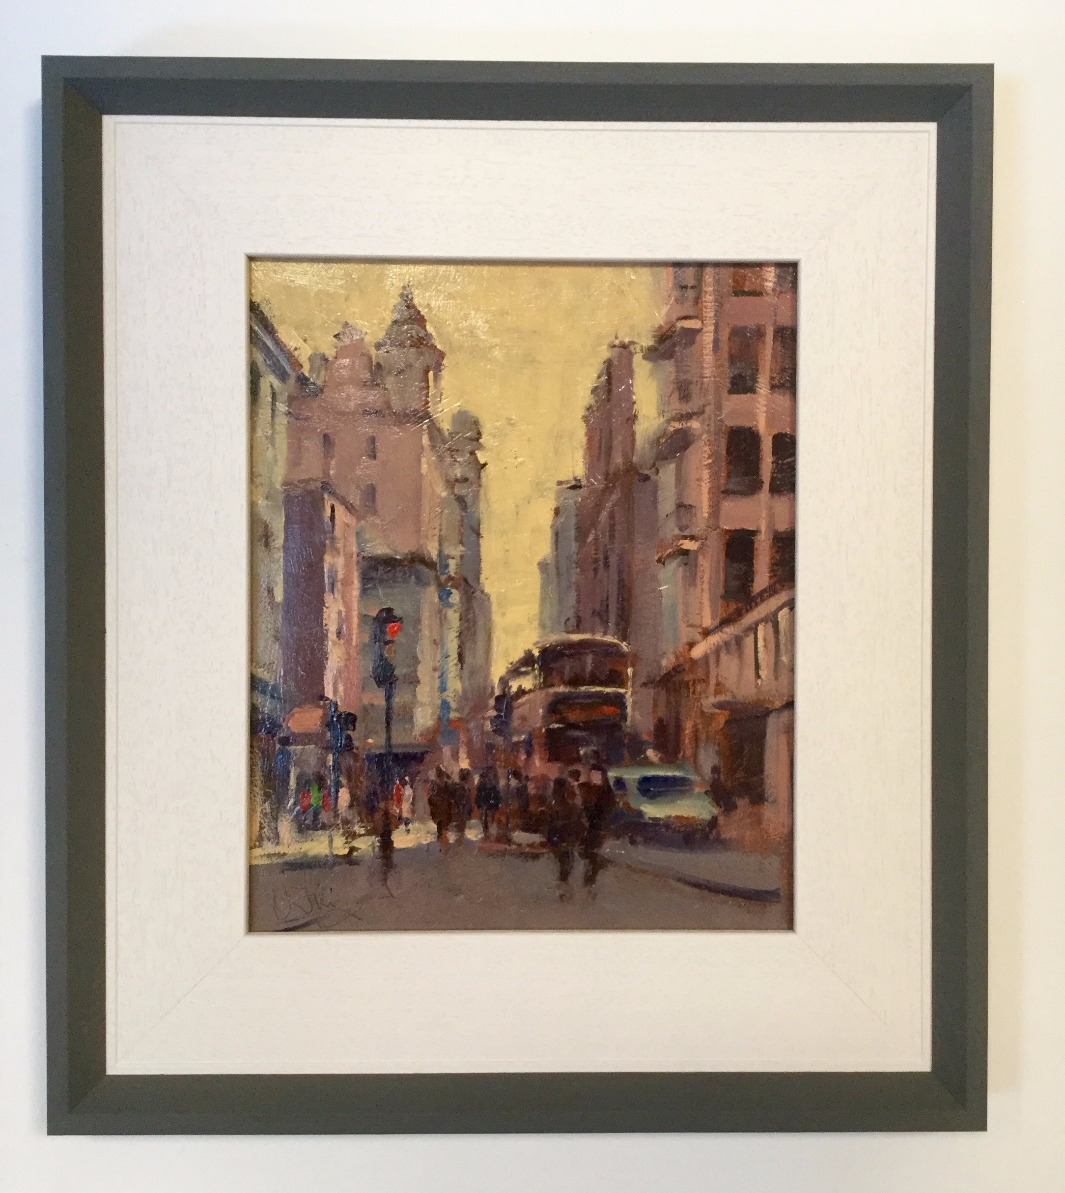 Deansgate (Manchester) by Trevor Lingard, Manchester | Local | Transport